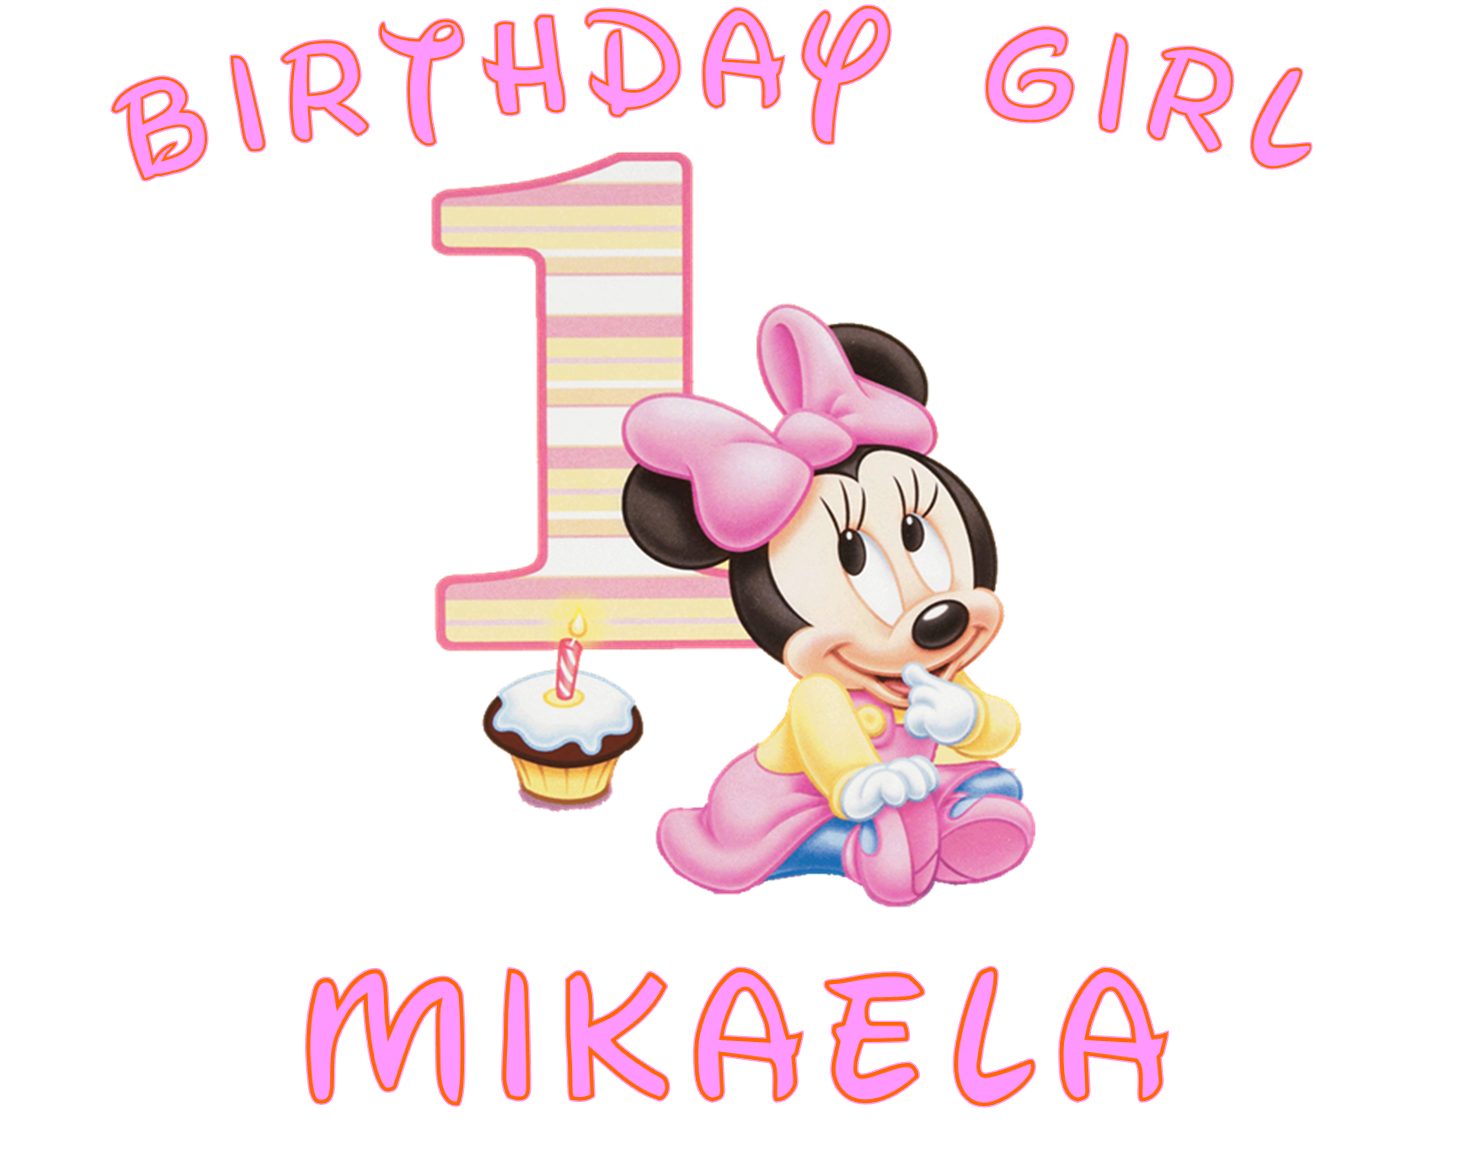 1st birthday girl clipart clip art freeuse download minnie mouse poses | minnie mouse girls first birthday shirt | 1st ... clip art freeuse download